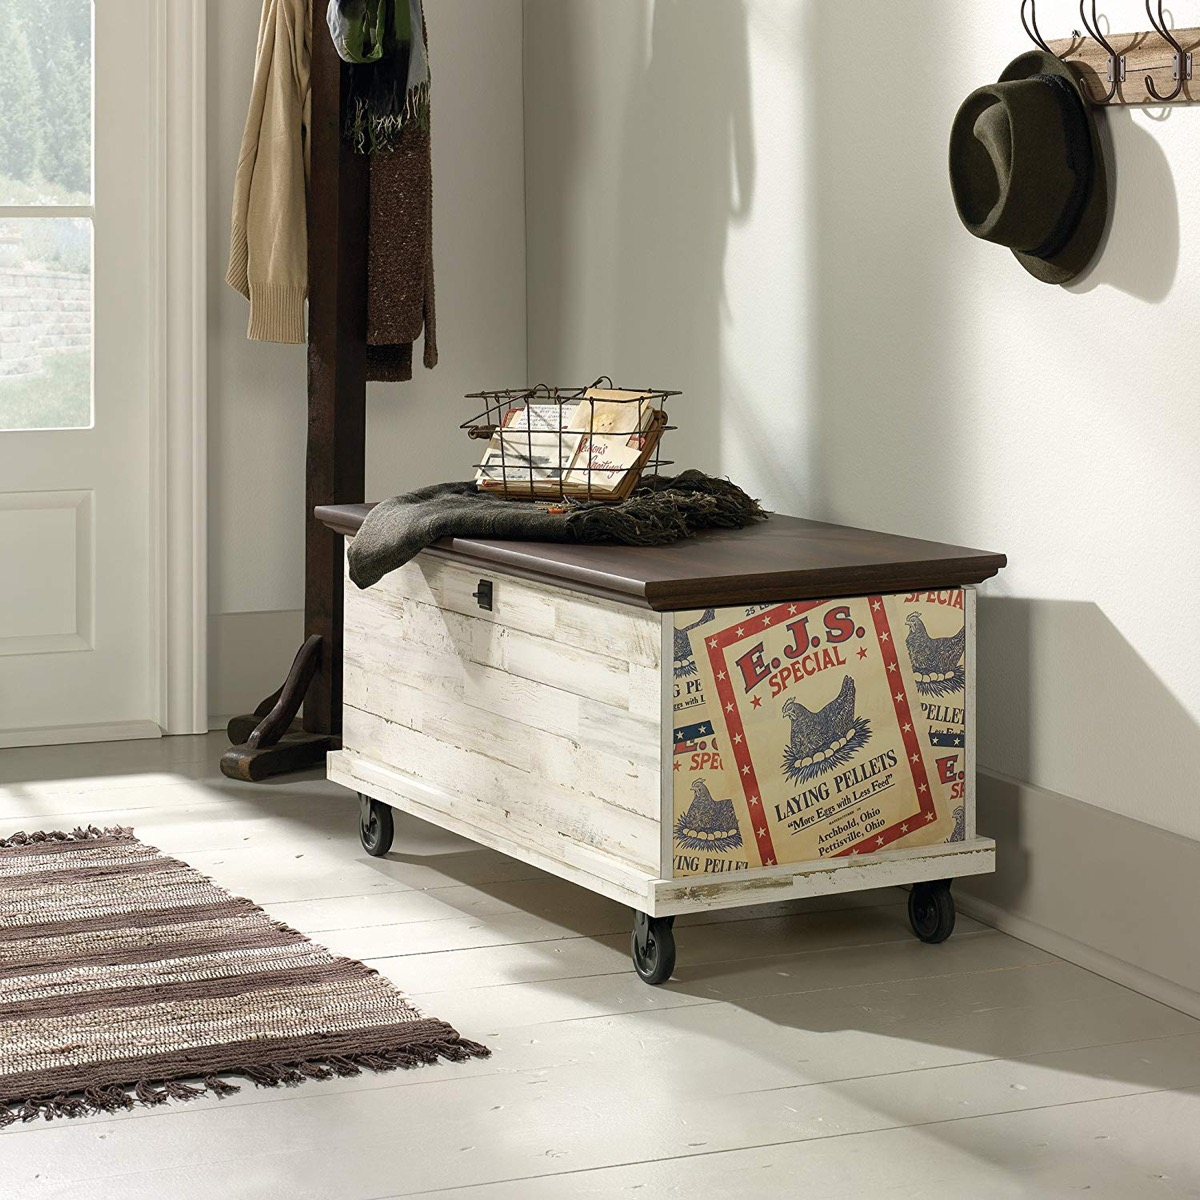 rustic-storage-bench-with-vintage-advertisement-decoration-and-non-swivel-caster-wheels